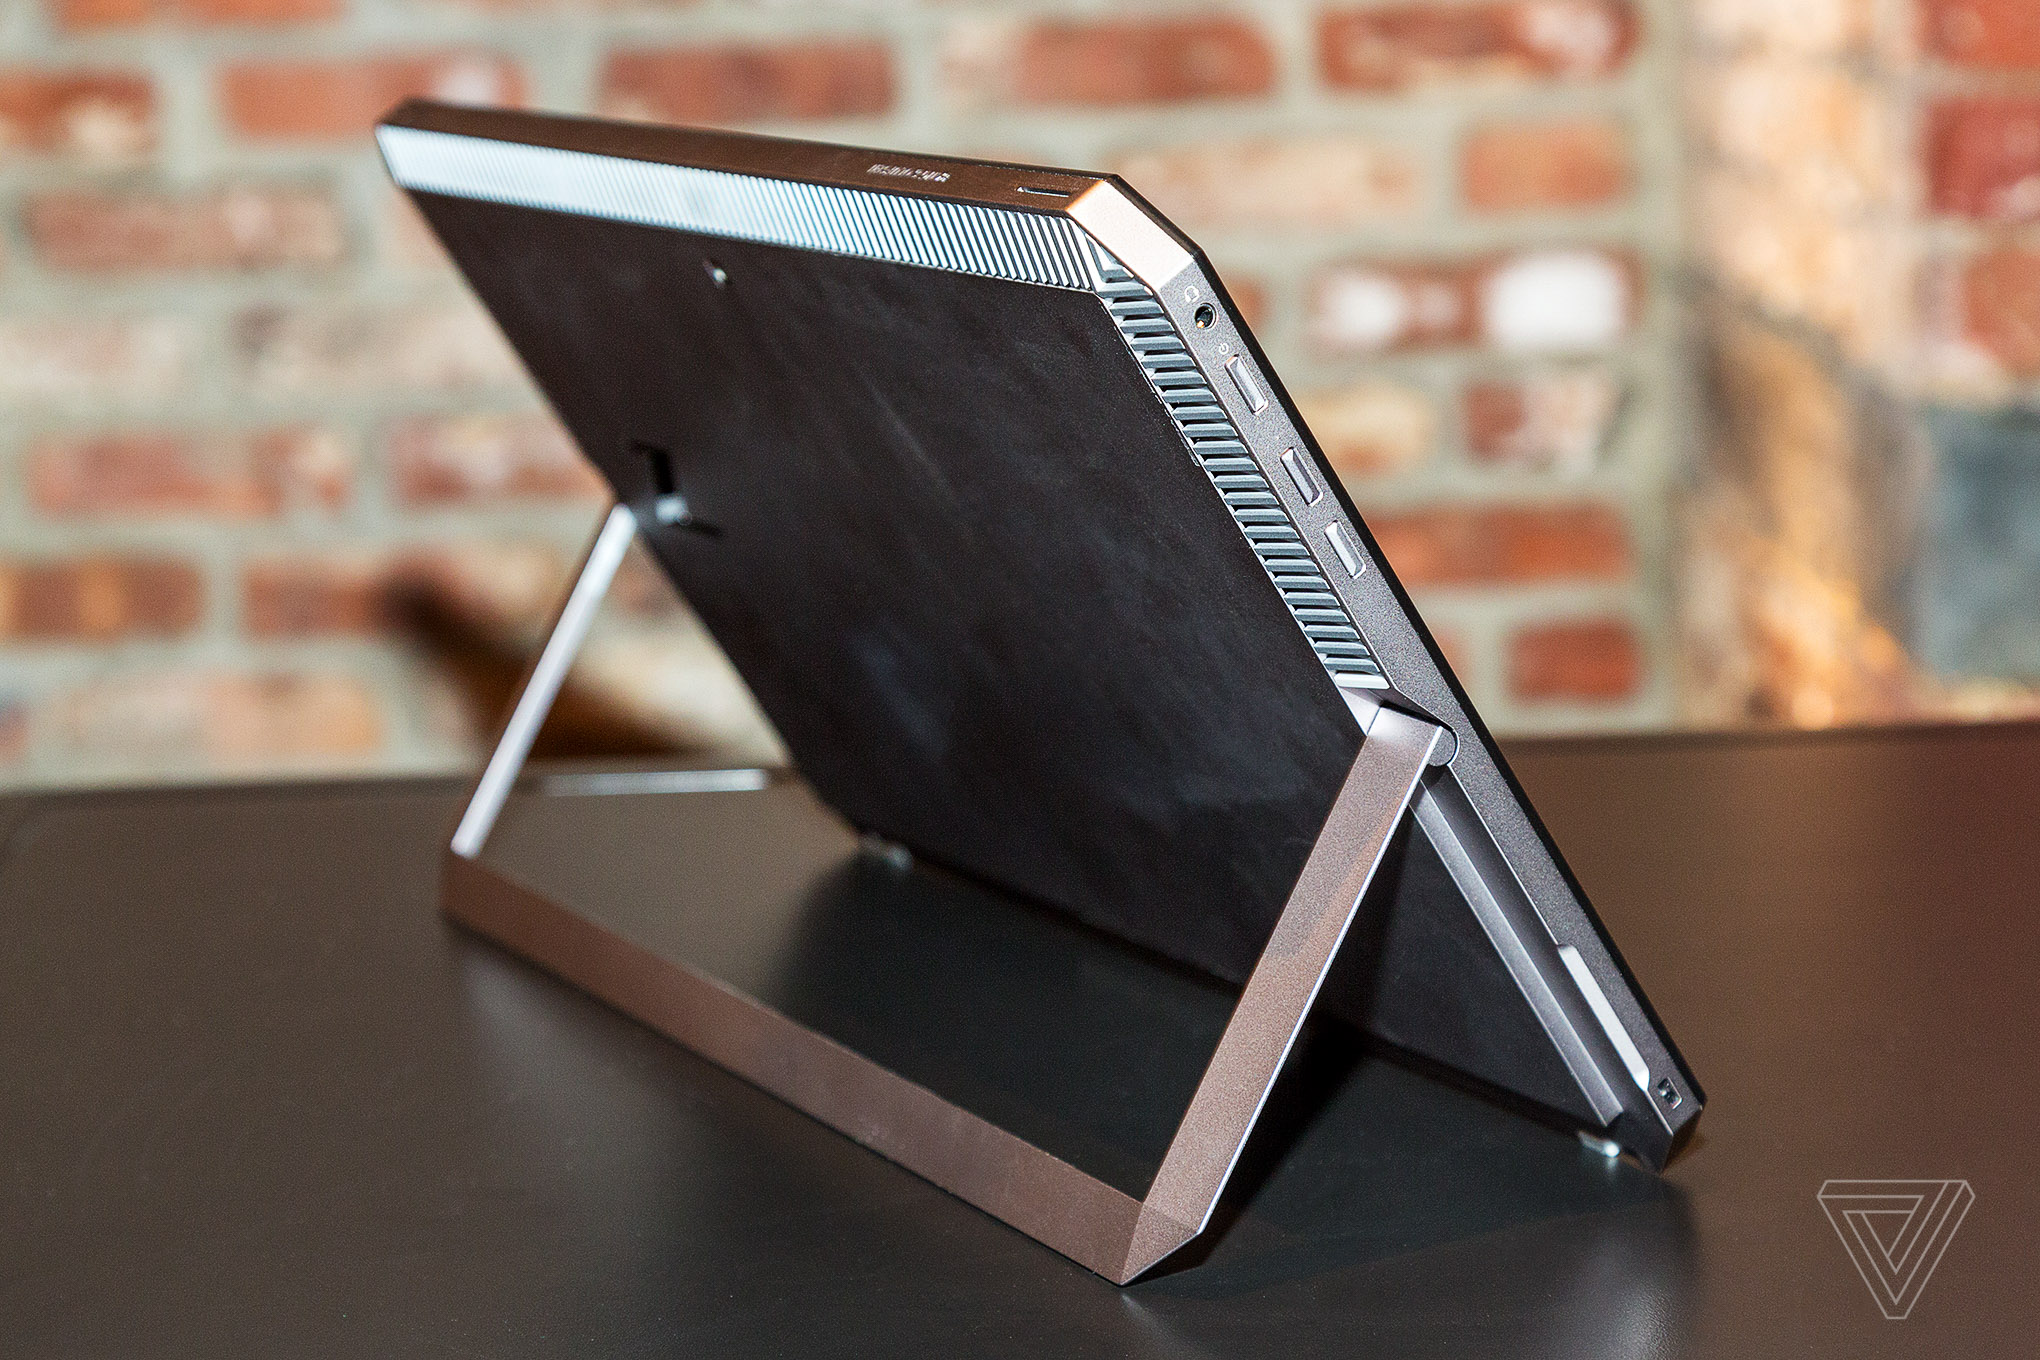 HP targets creative pros with powerful 2-in-1 mobile workstation